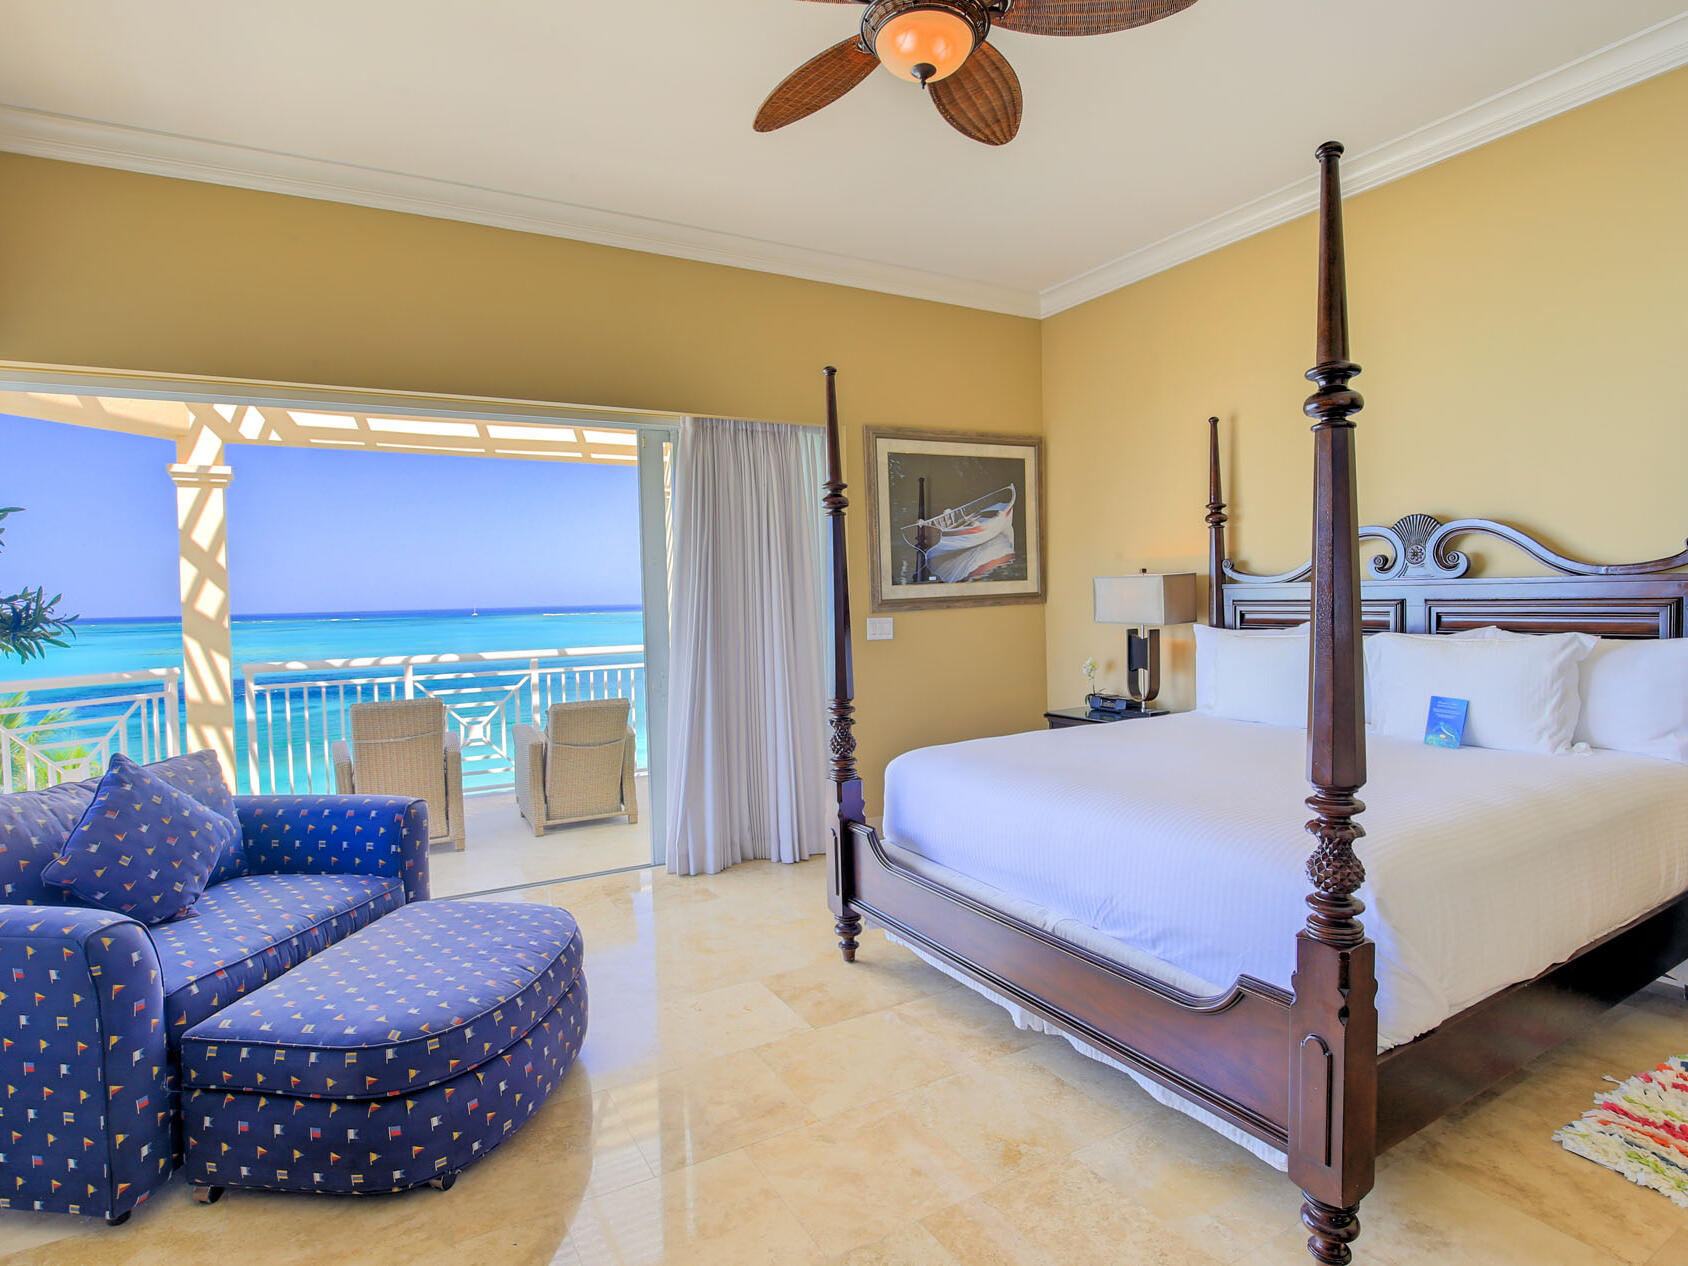 Bedroom of 3 Bedroom Oceanfront Penthouse with Roof Terrace at Windsong Resort On The Reef